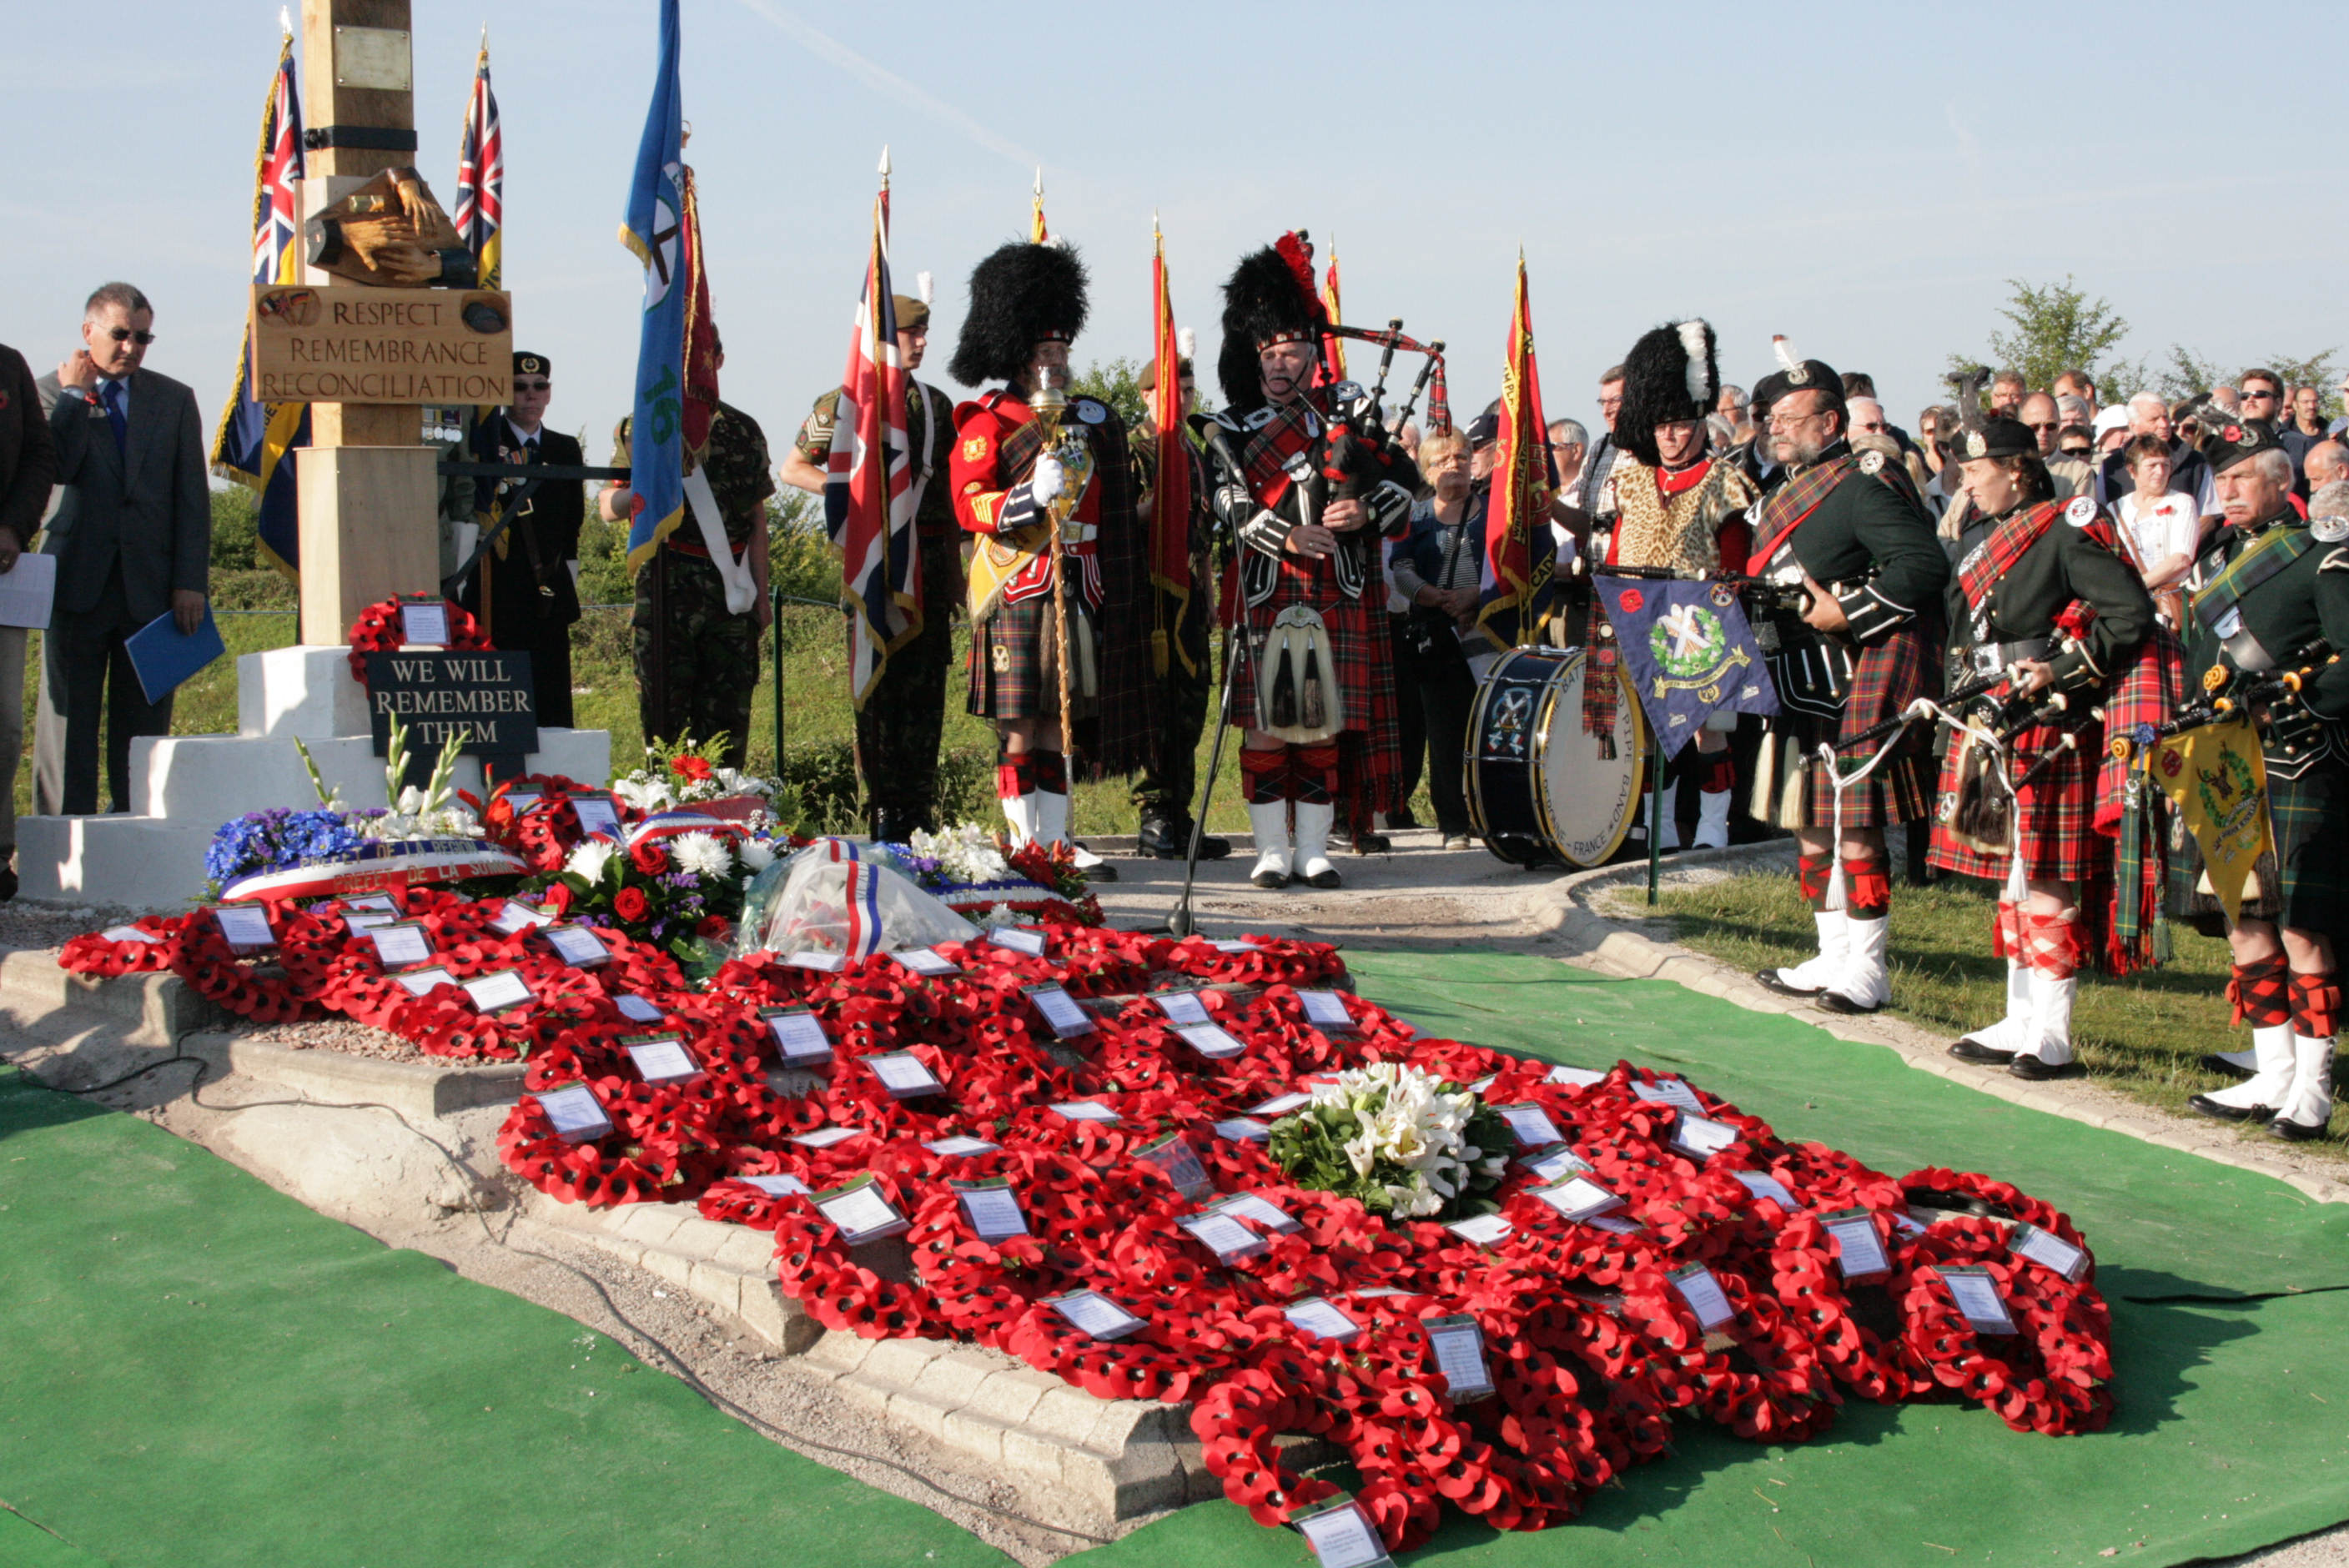 1st July 2011 7.55am. The wreaths are laid.